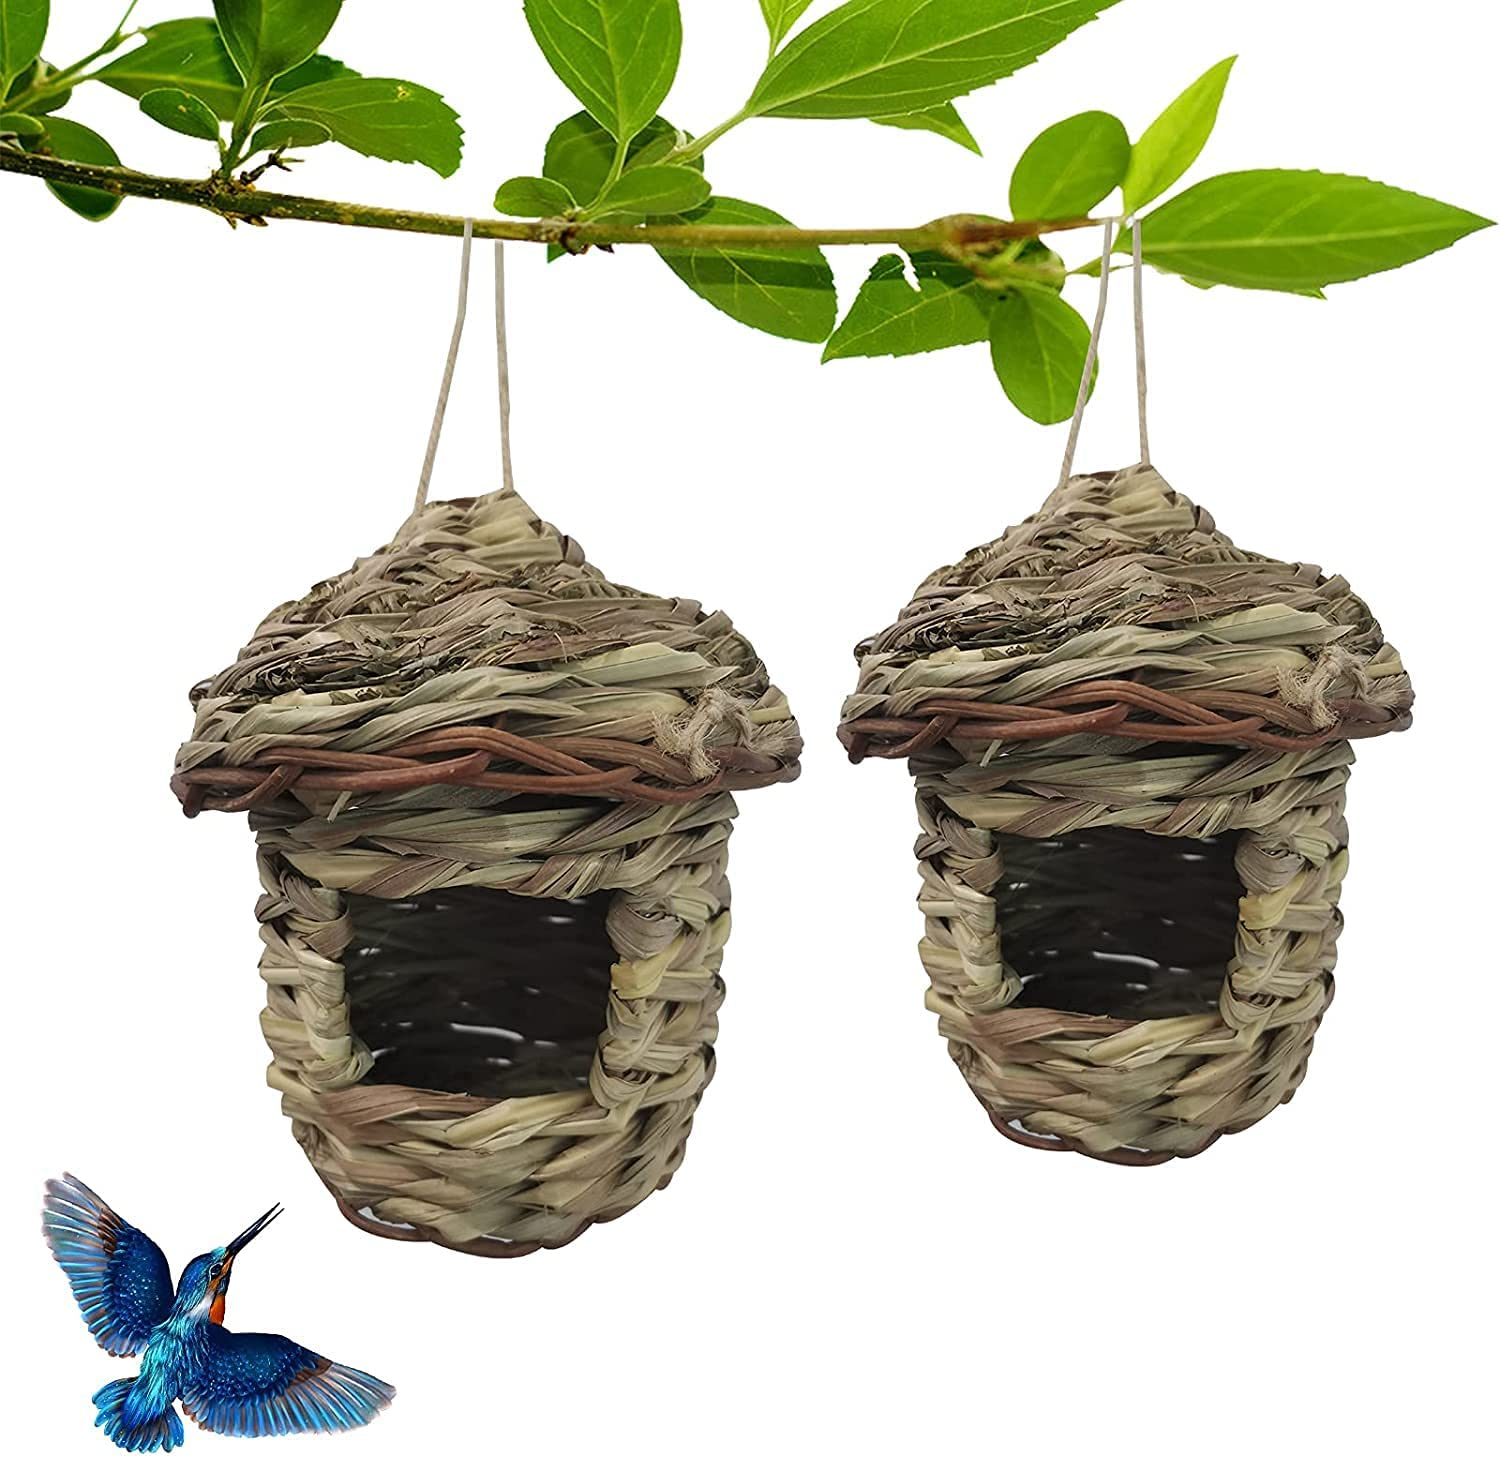 Hummingbird Houses New arrival for Popular product Nests Outdoors Outside